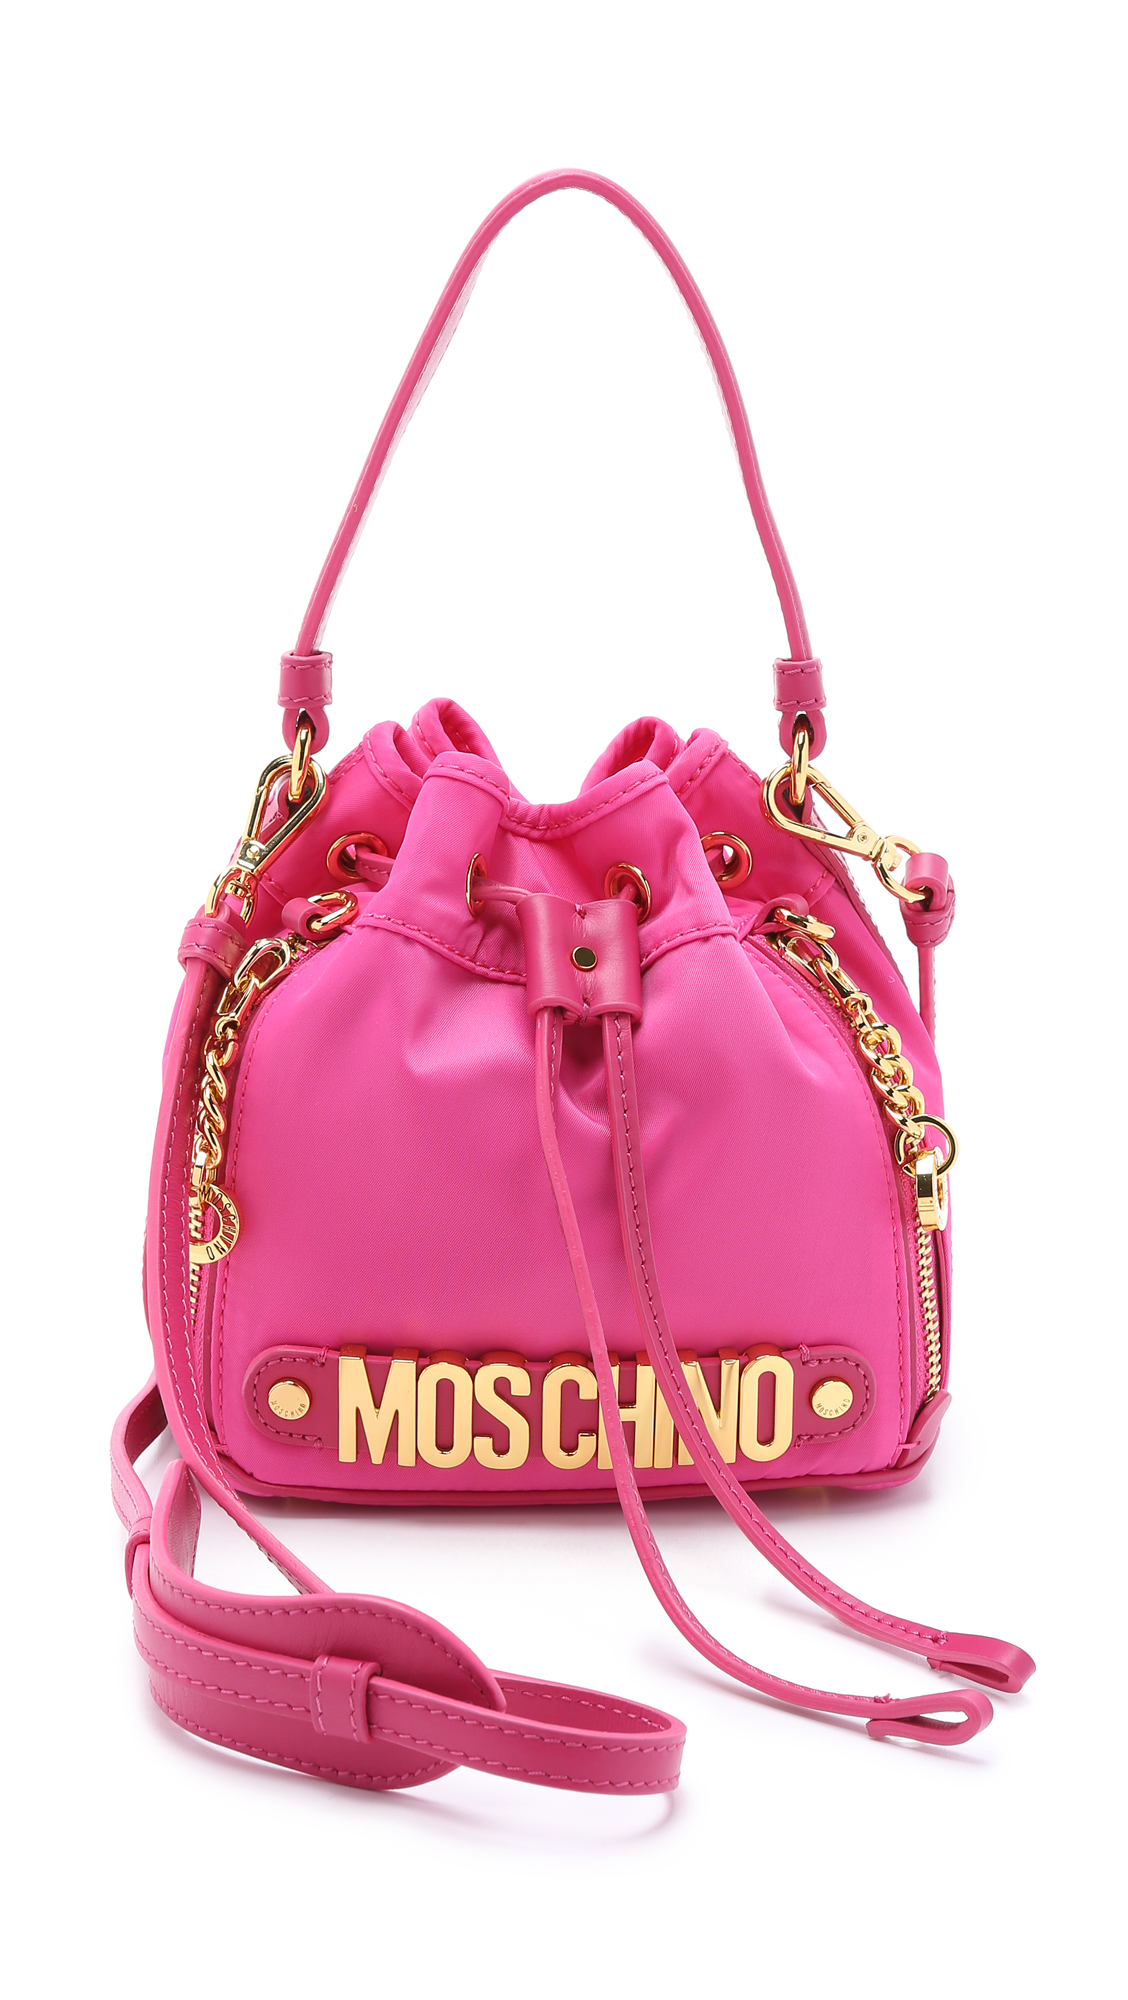 lyst moschino nylon bucket bag pink in pink. Black Bedroom Furniture Sets. Home Design Ideas